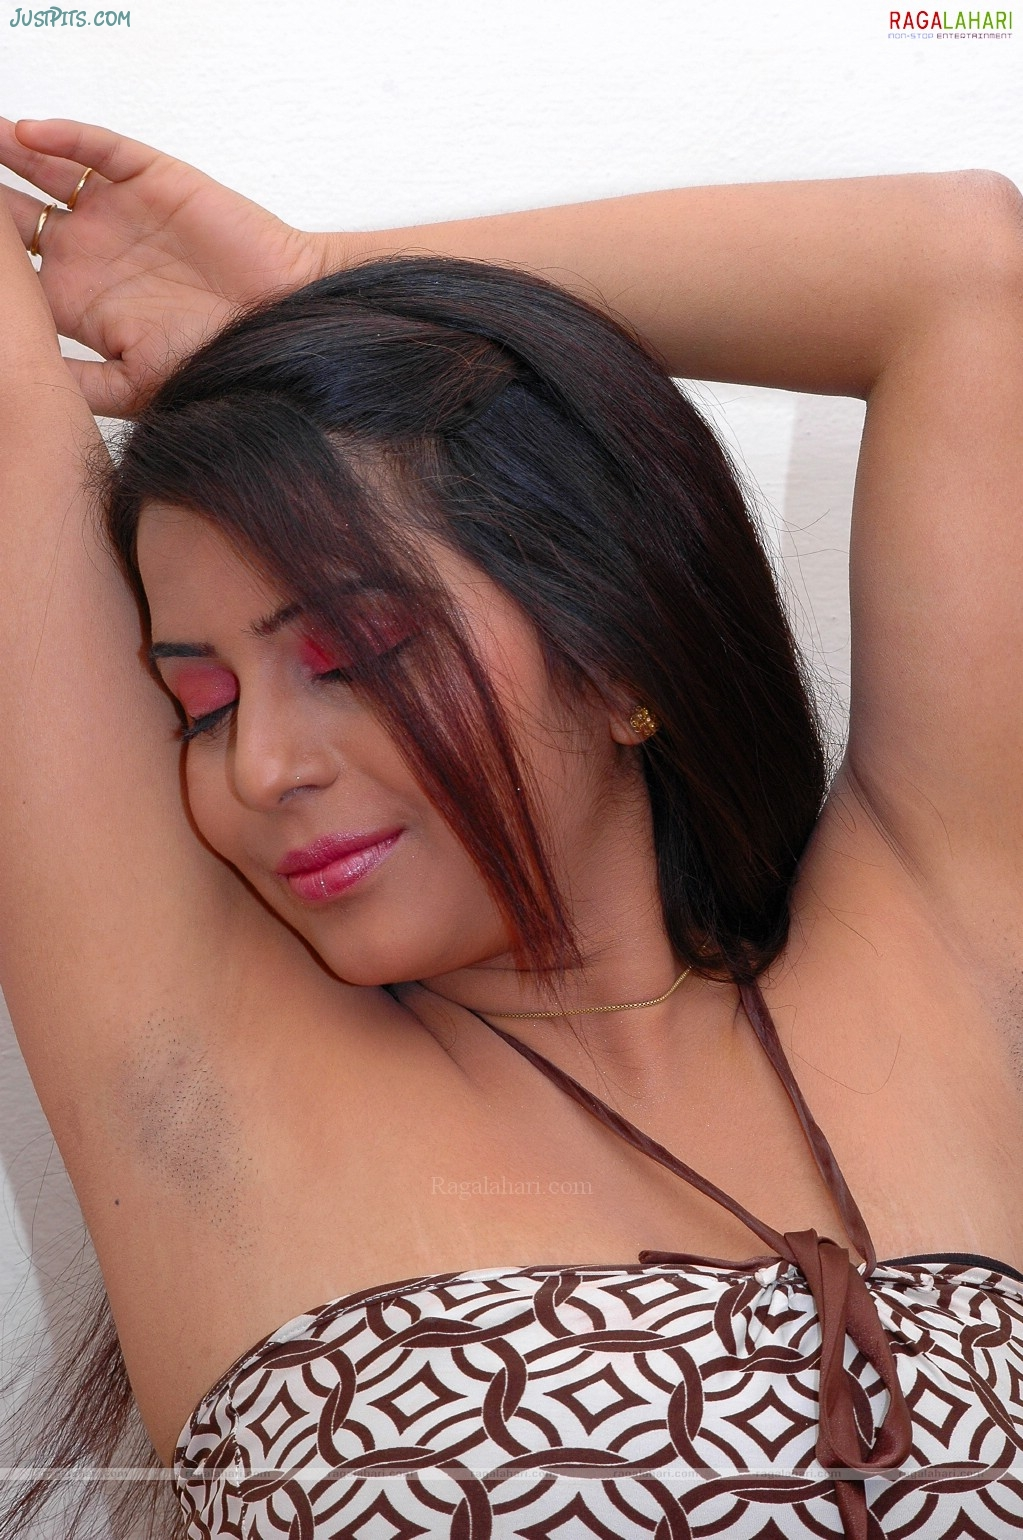 indian hairy armpits photo of girl